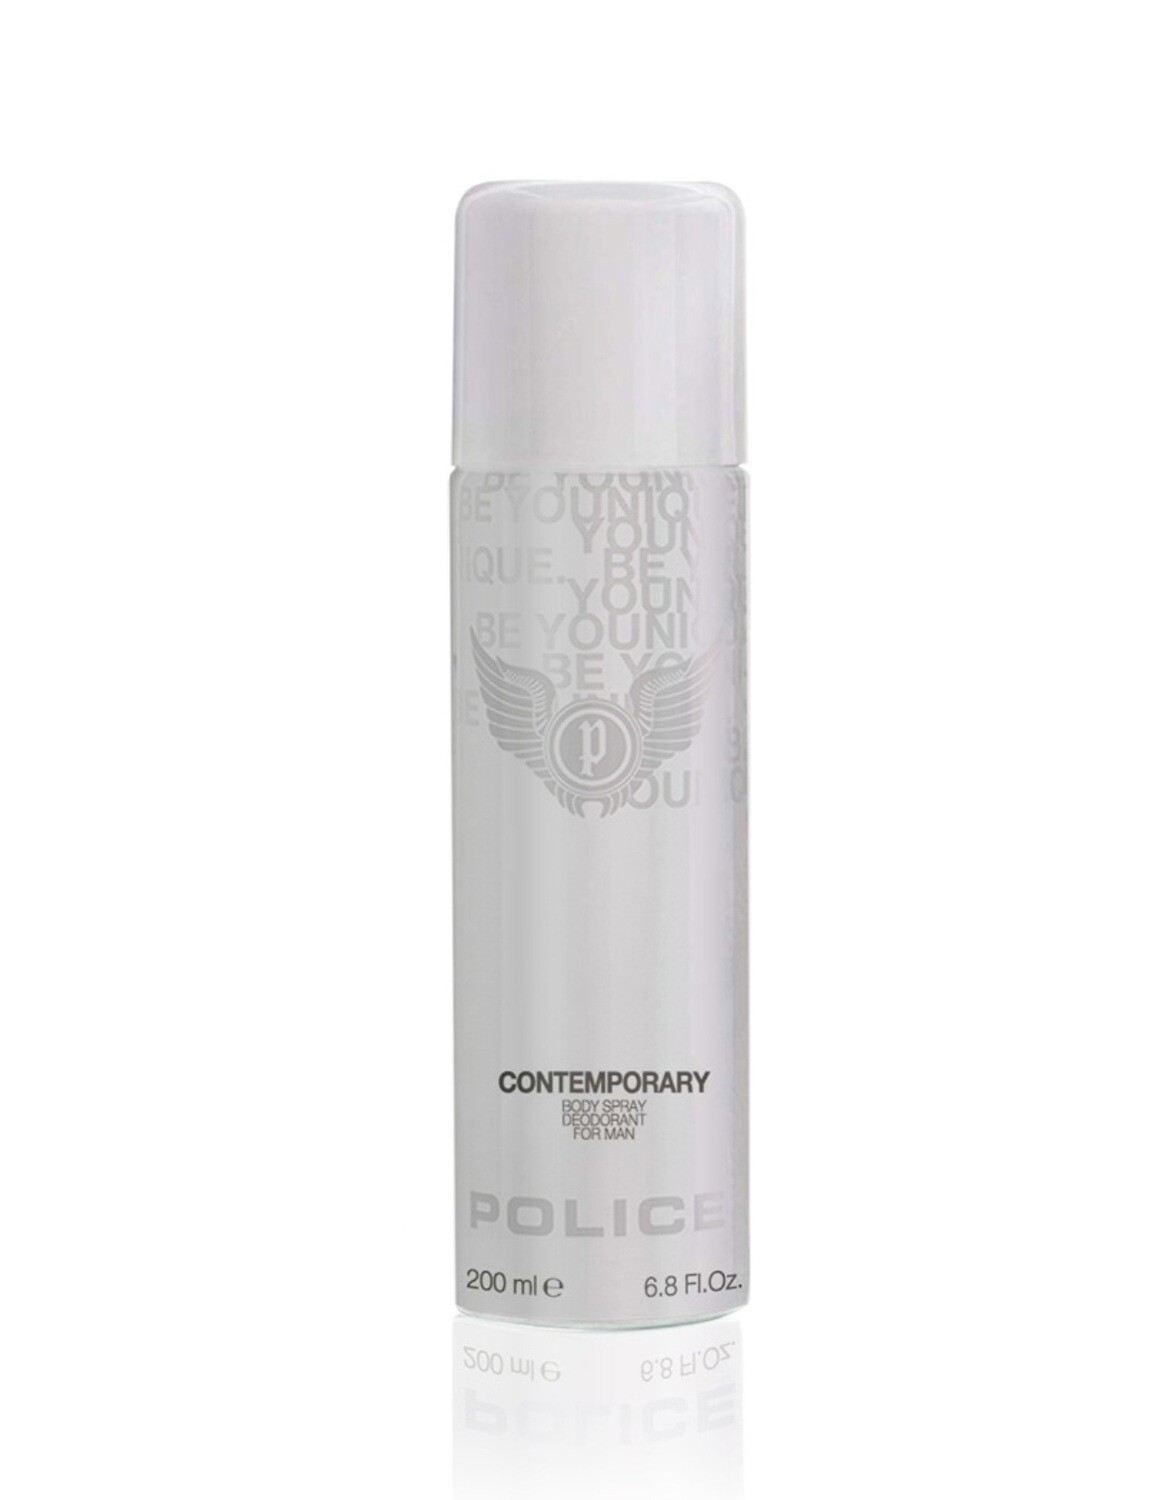 Police Contemporary Deodorant Spray 200ml